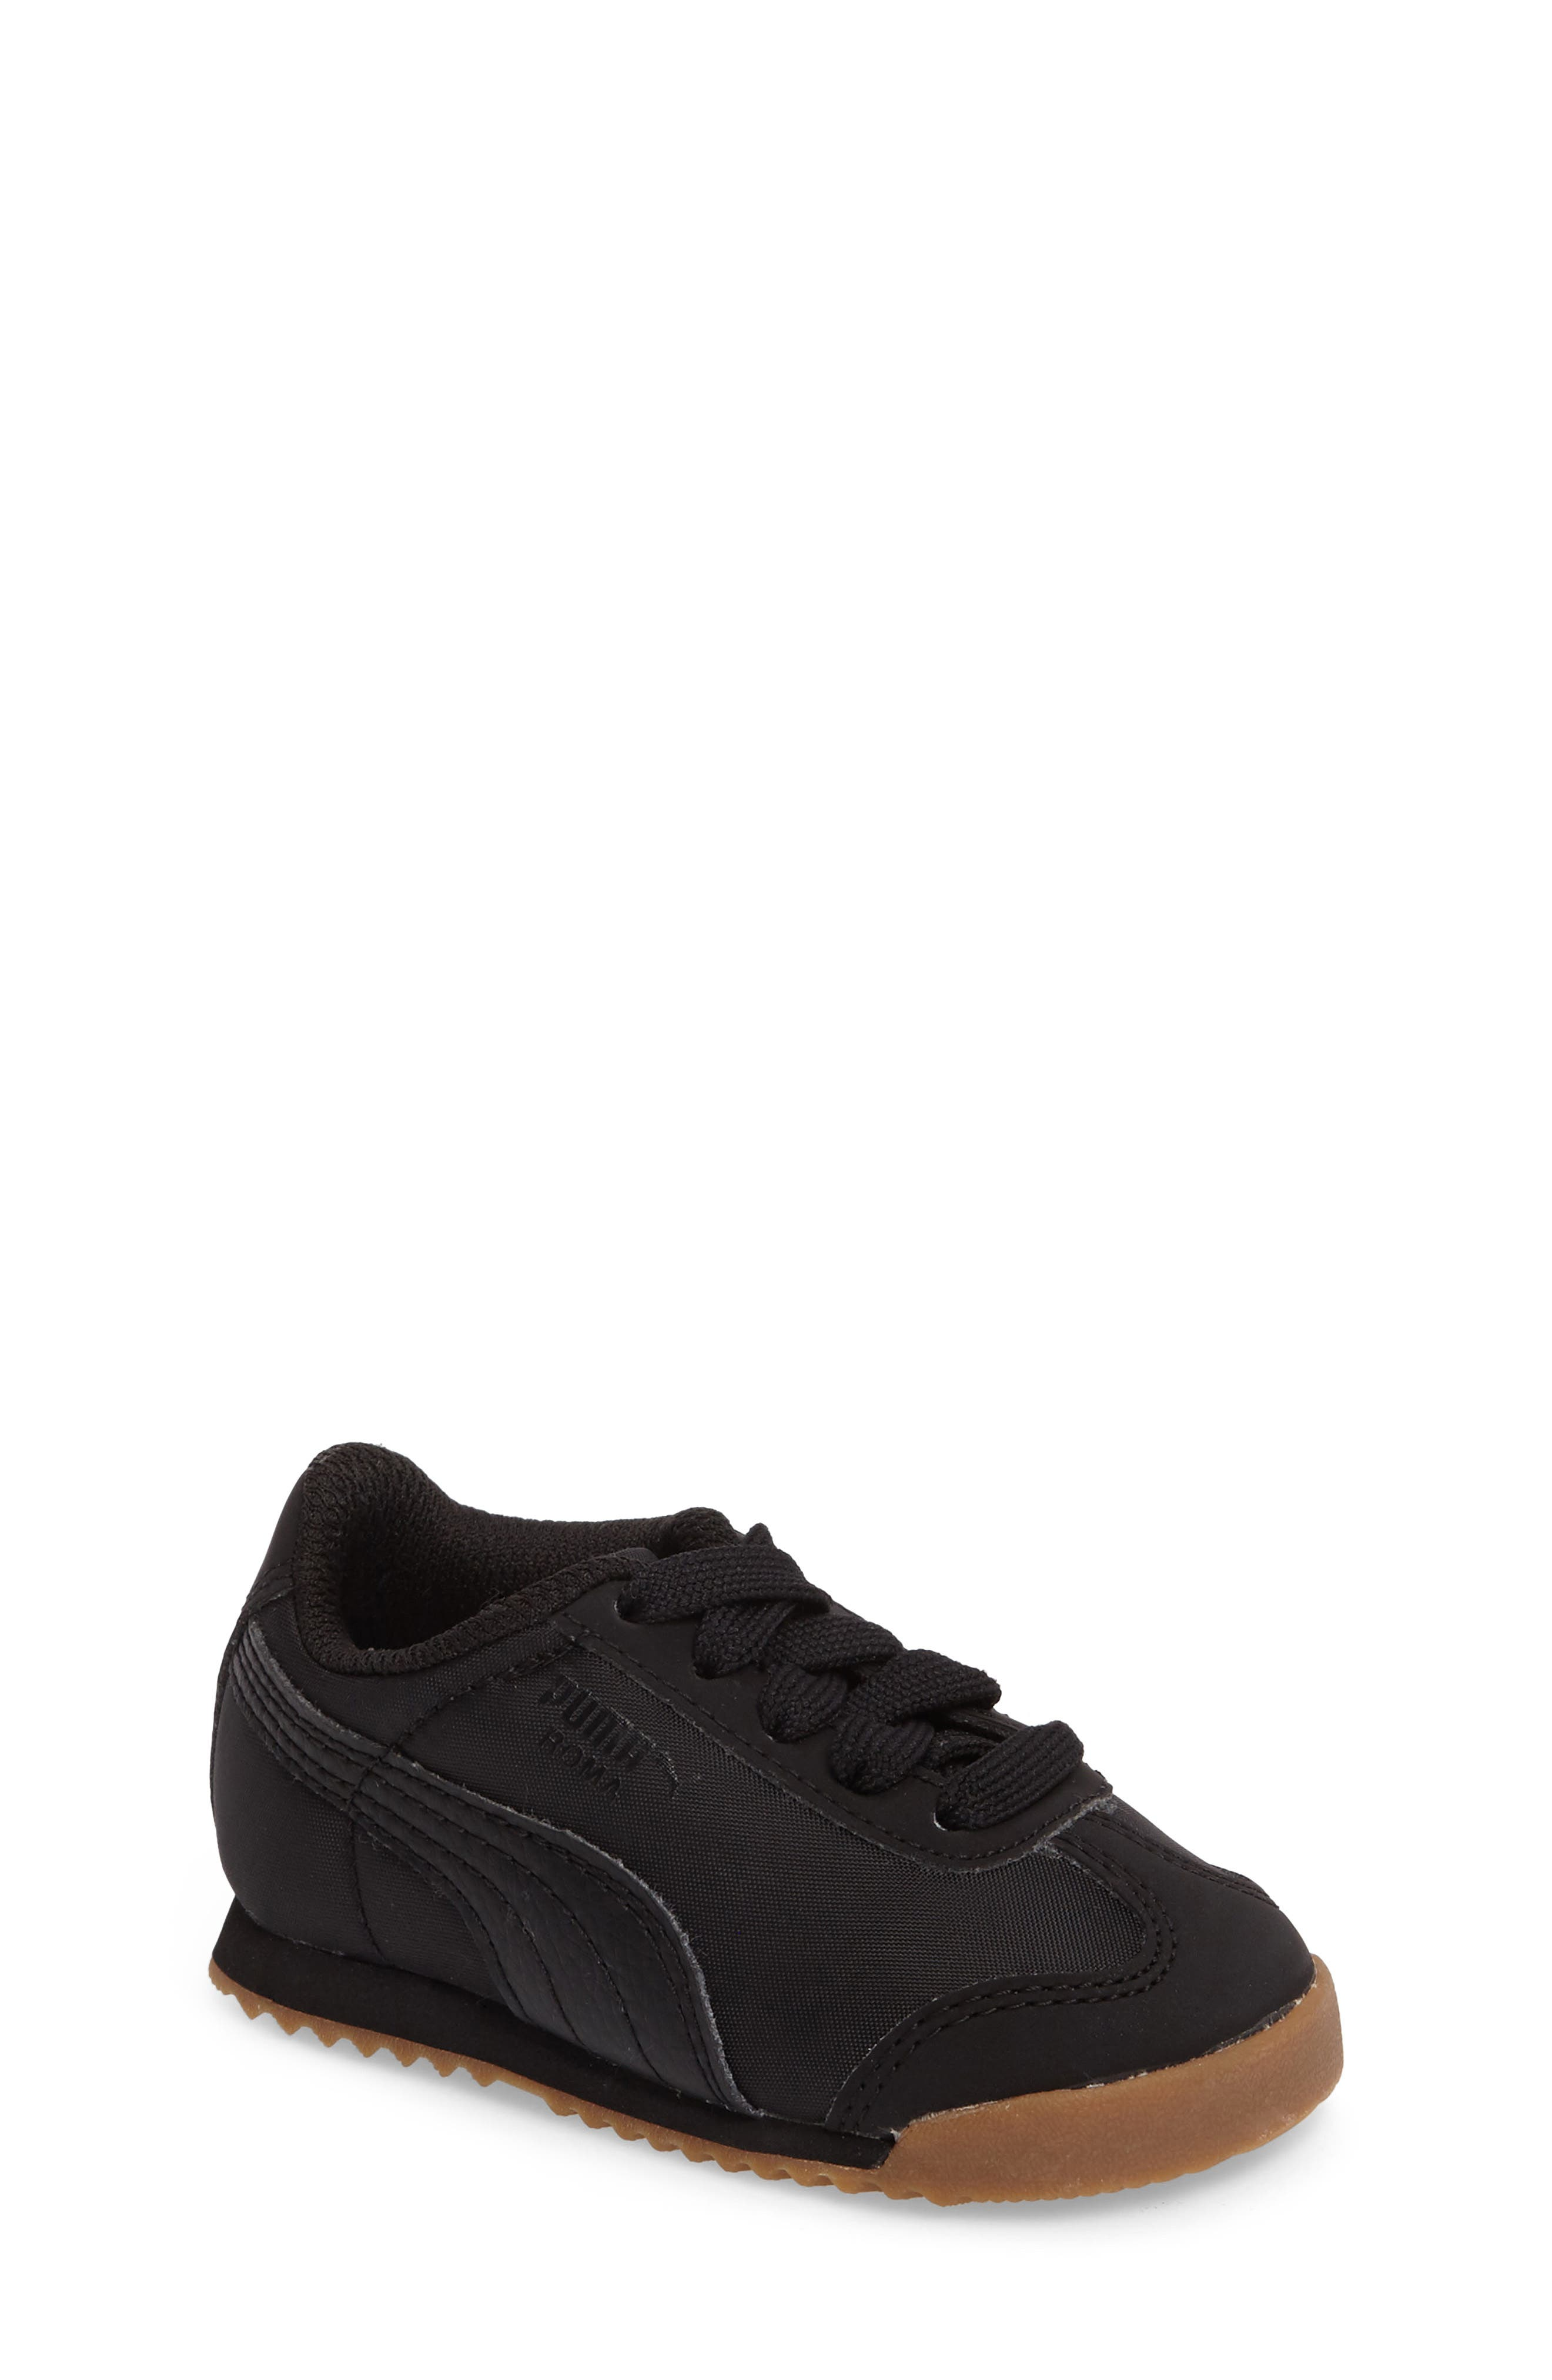 Roma Basic Summer Sneaker,                         Main,                         color,